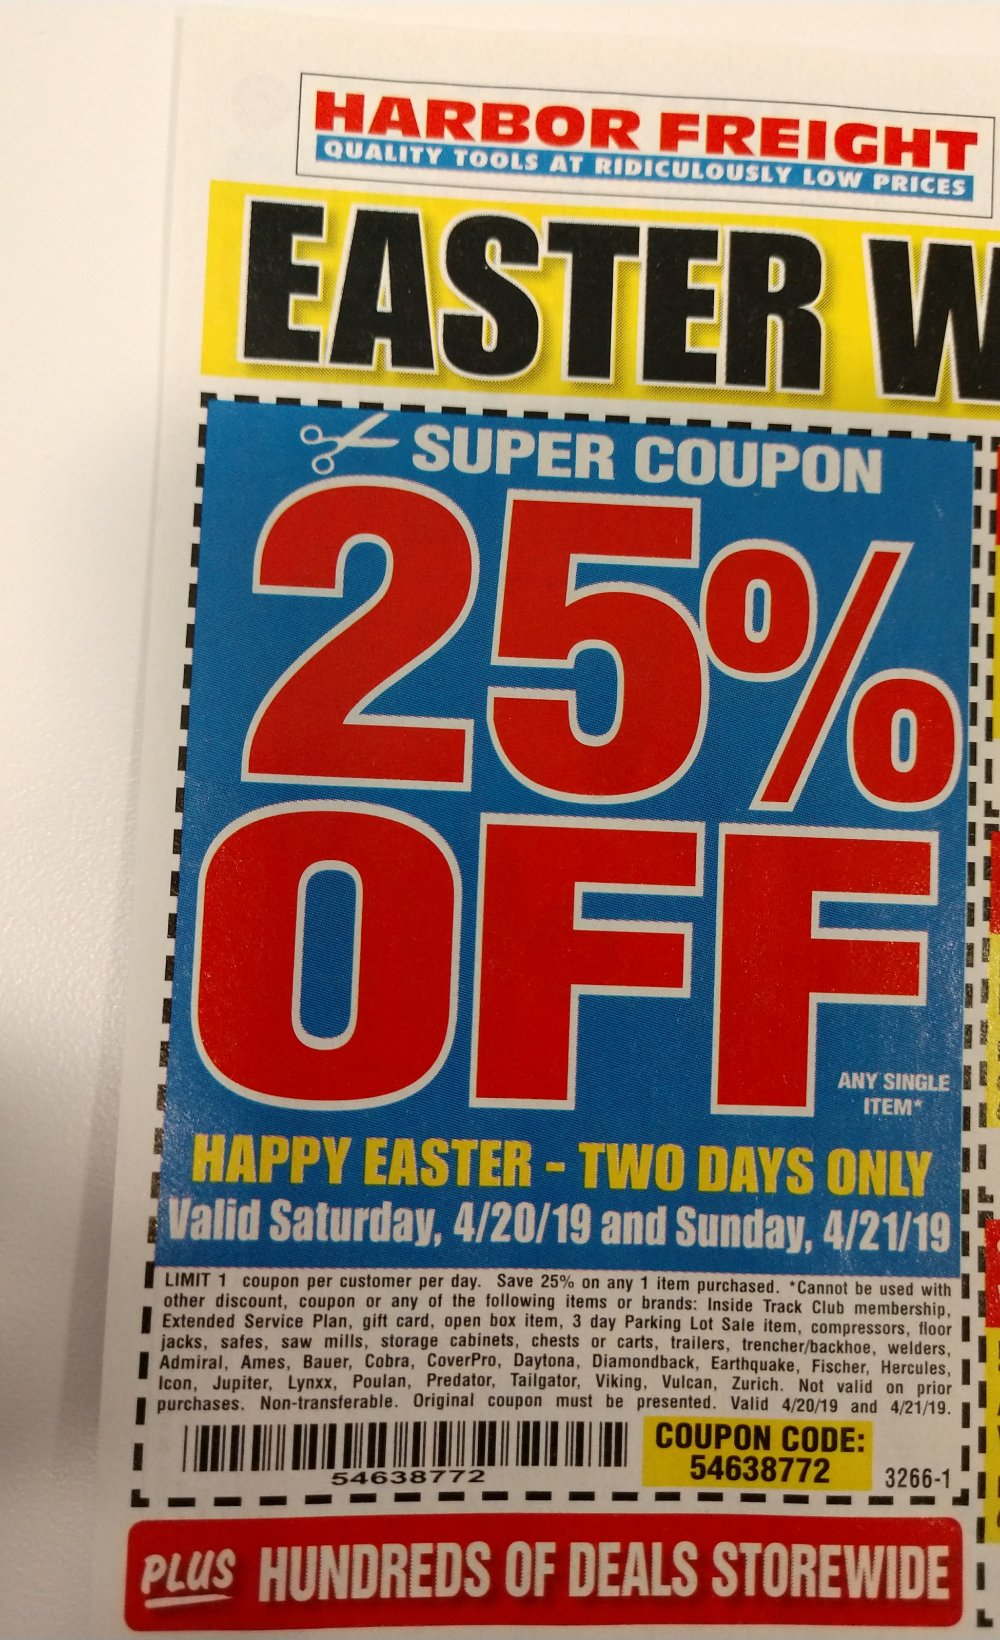 Harbor Freight Coupon, HF Coupons - 25% off